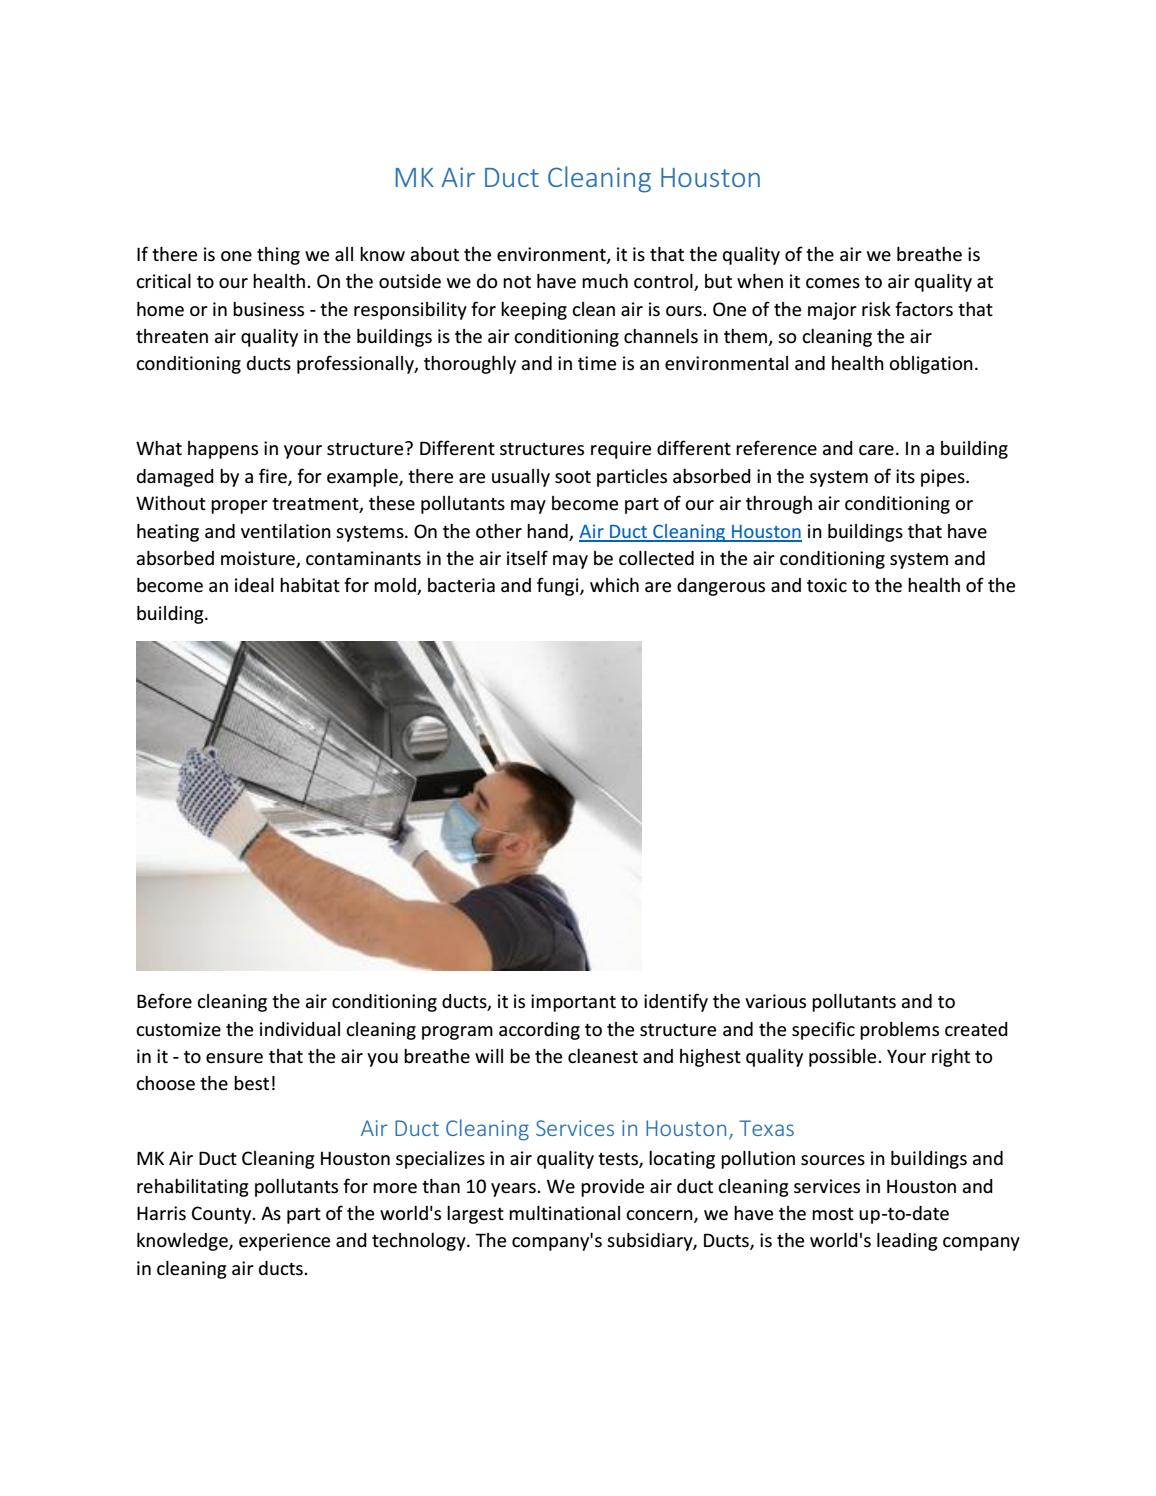 MK Air Duct Cleaning Houston by mkairducthtx - issuu